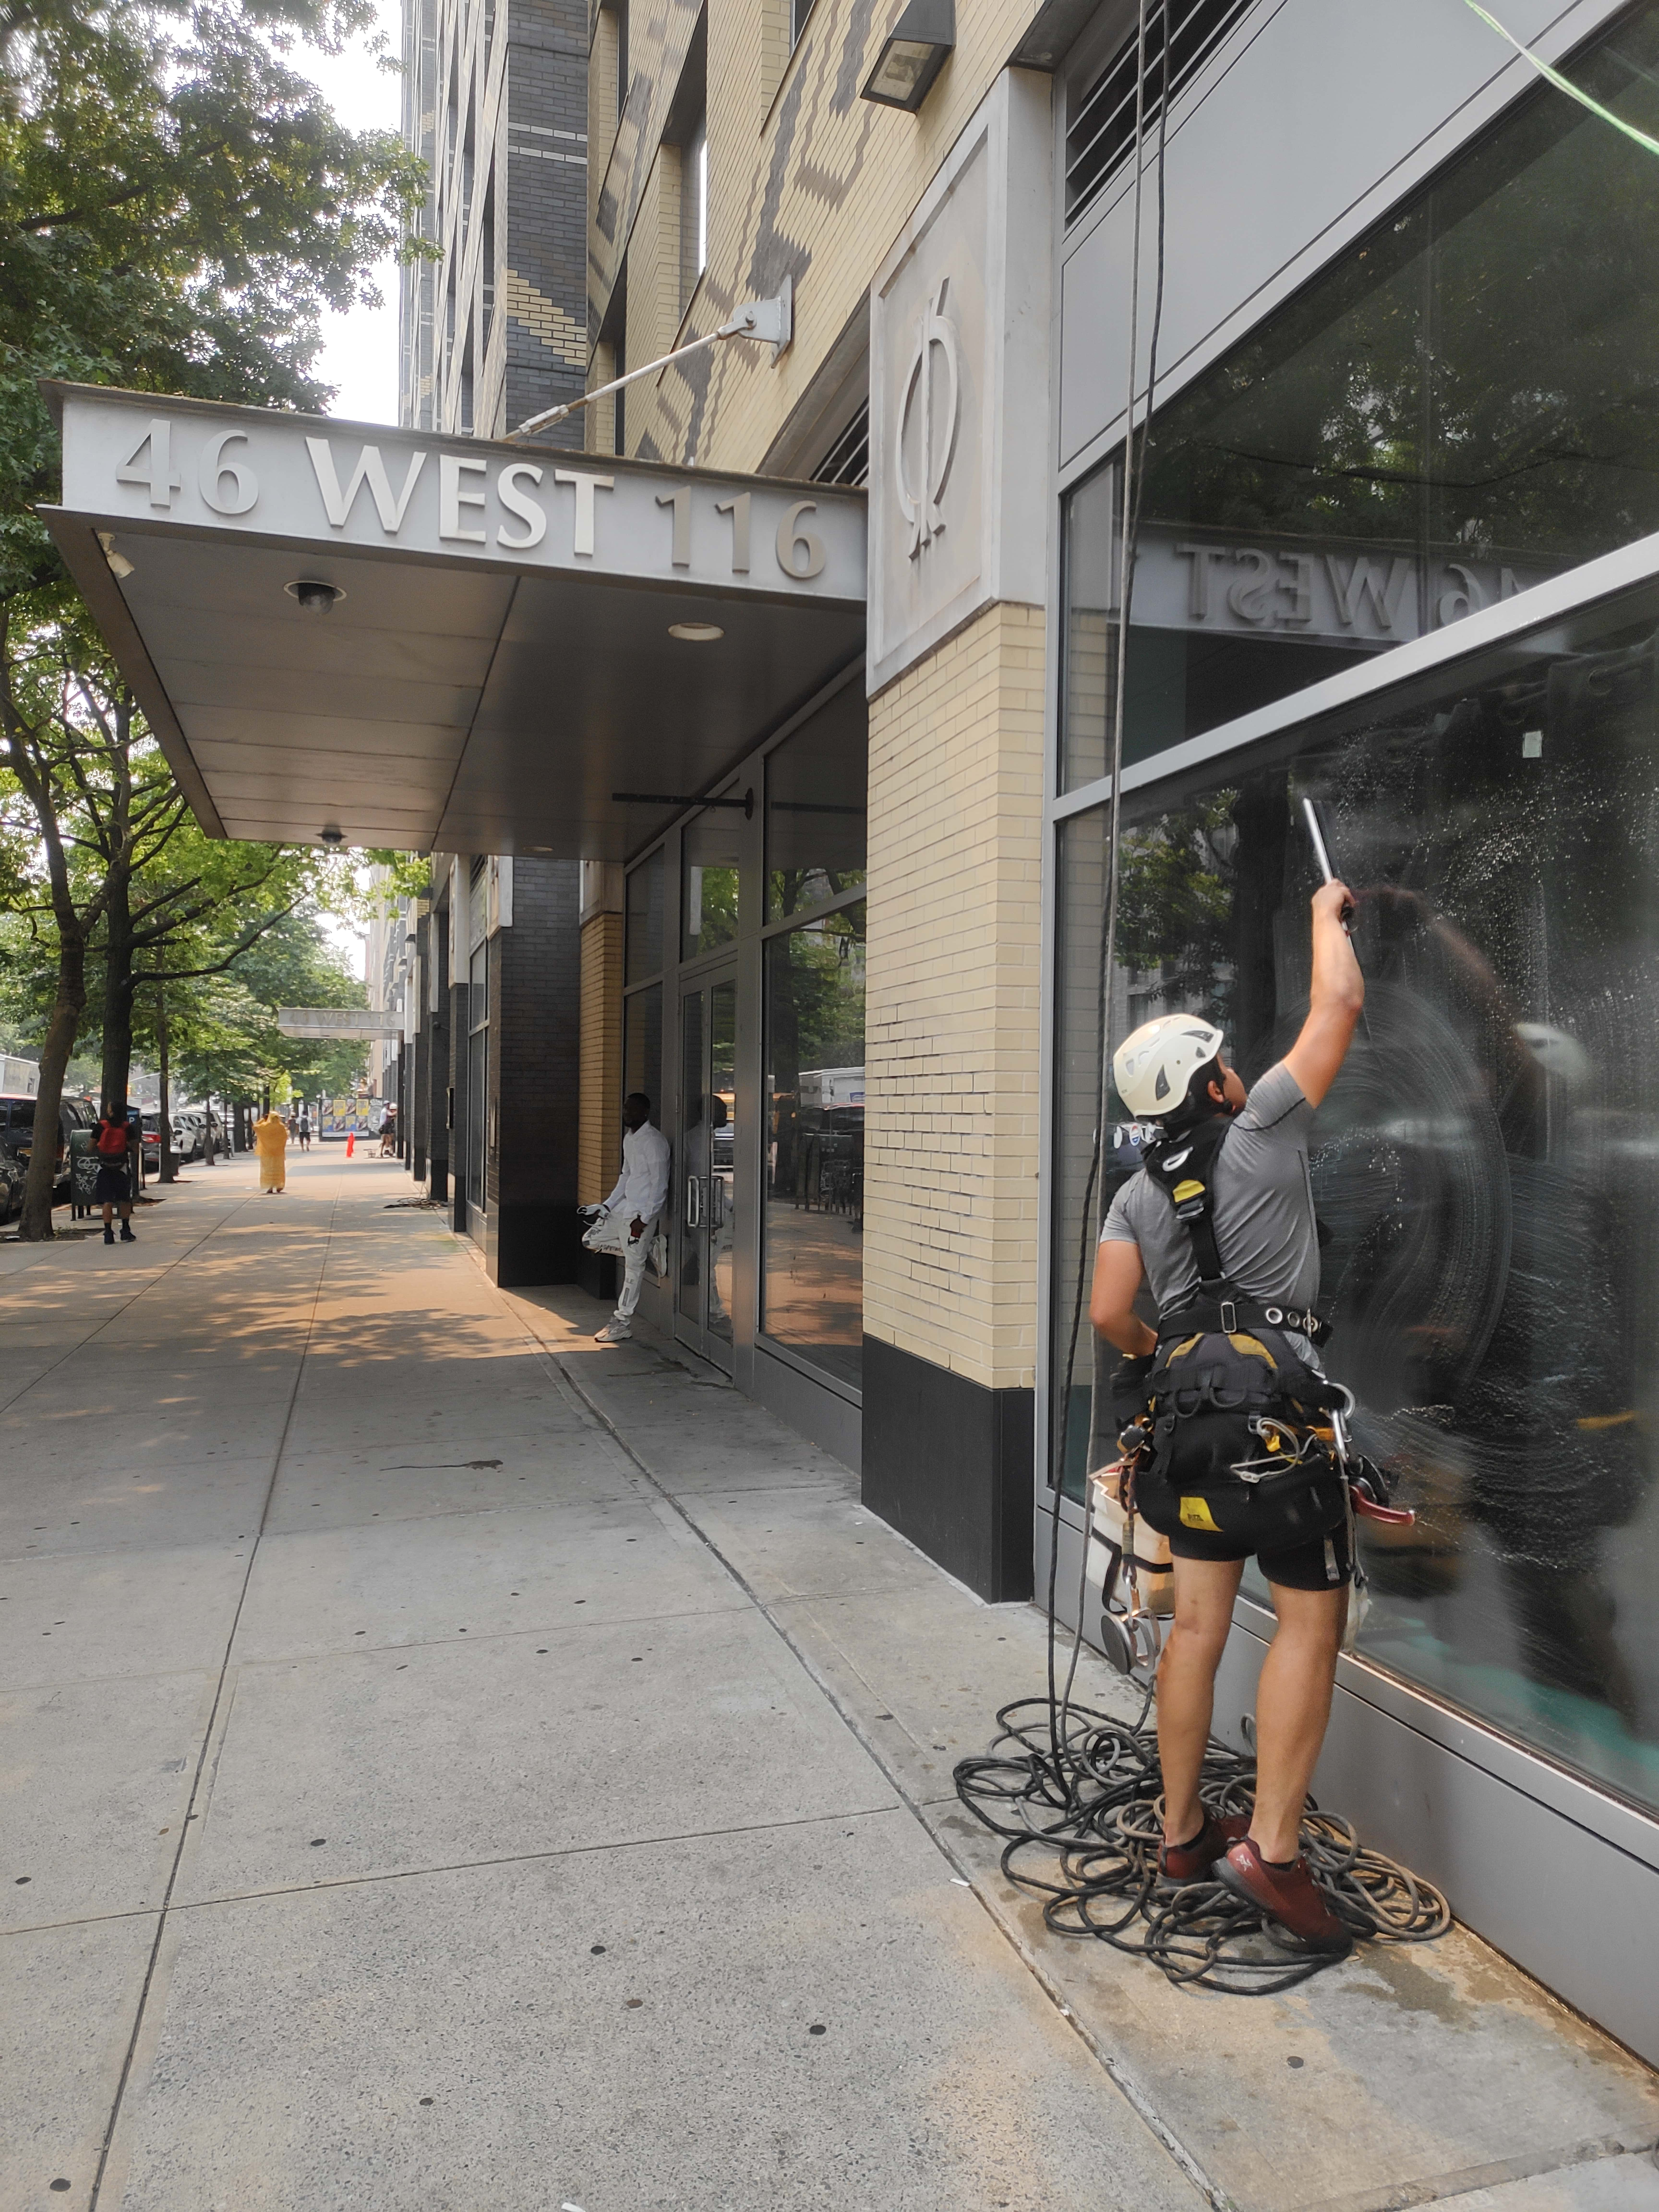 Cleaning fasade building in 40 West 116th Street - Big Apple Window Cleaning